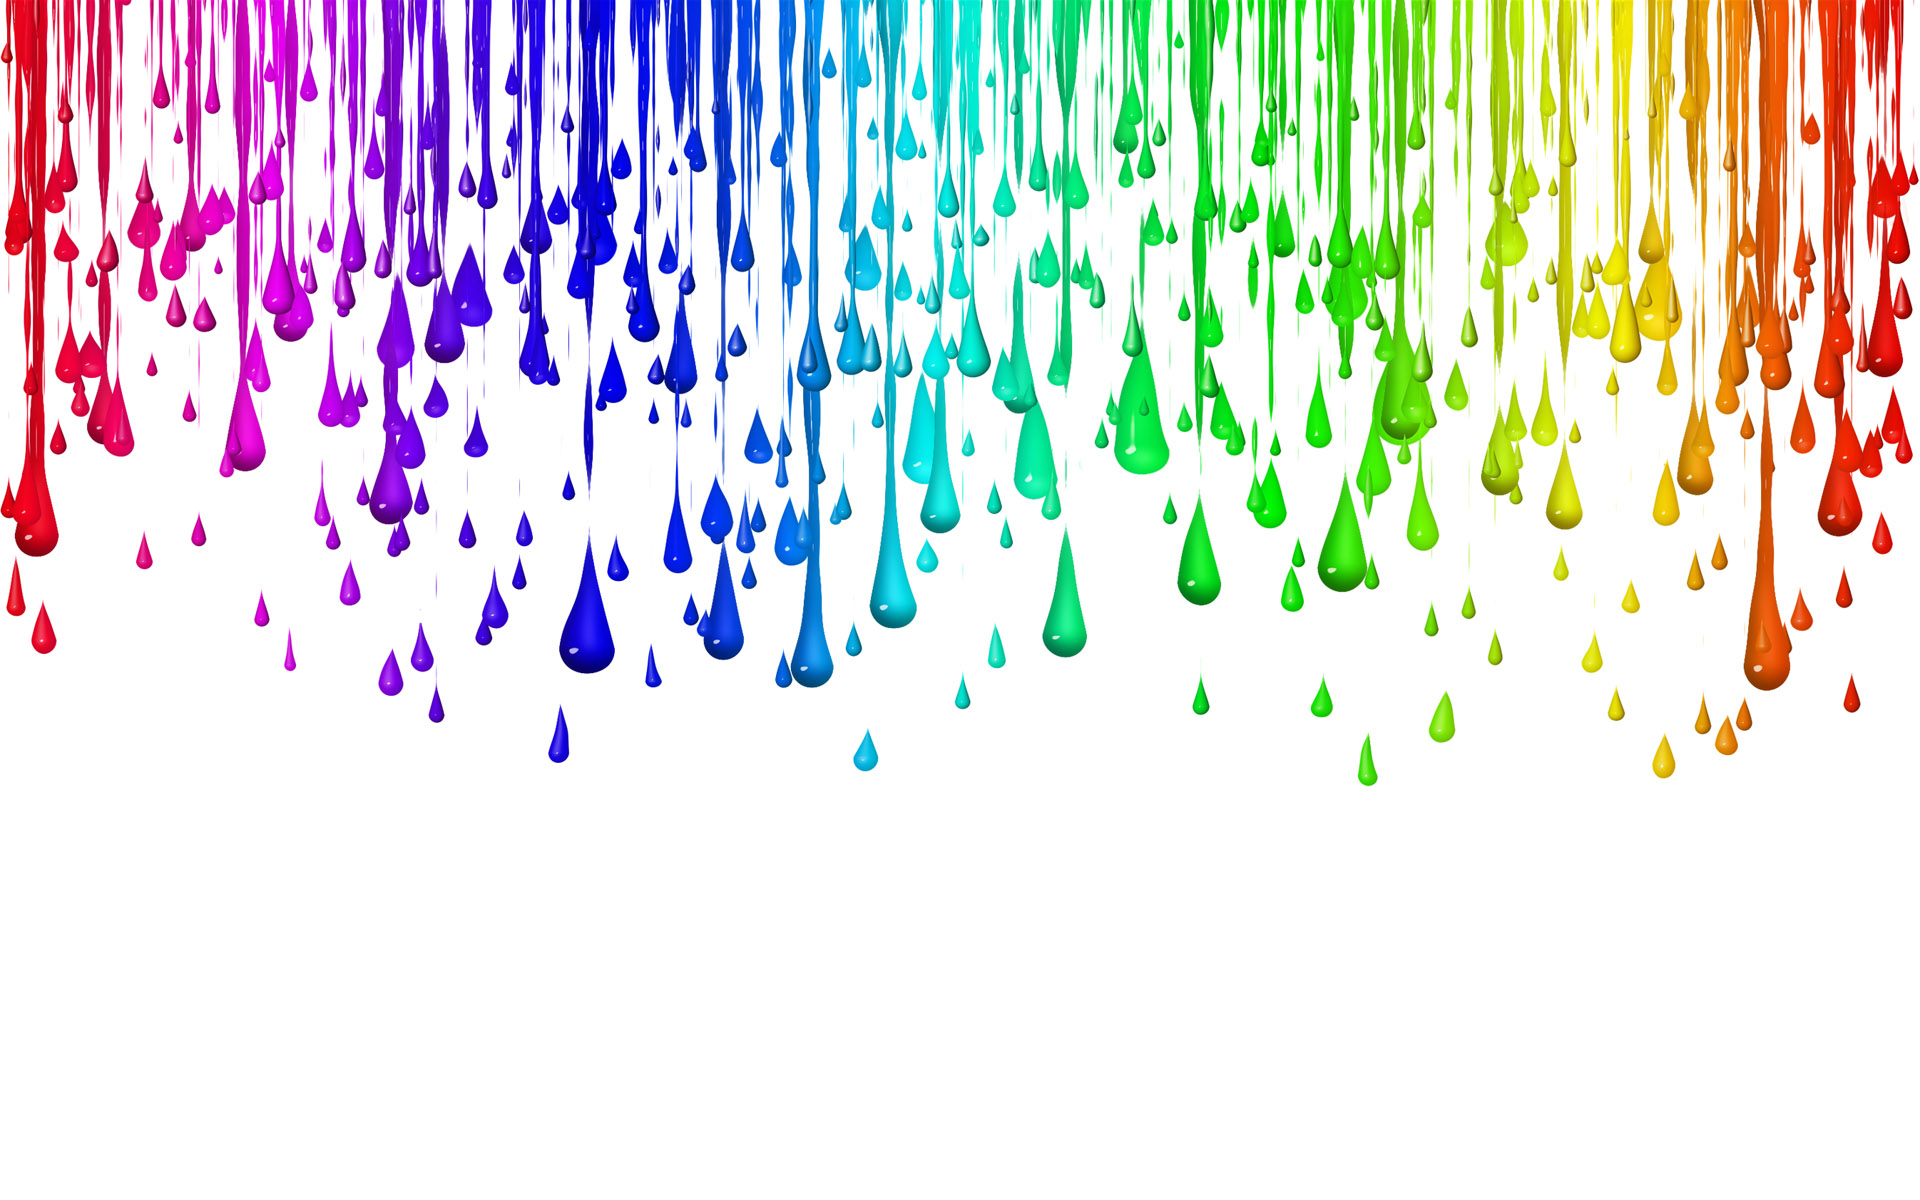 drops, paint, texture paints, background, download photo, color paint texture background